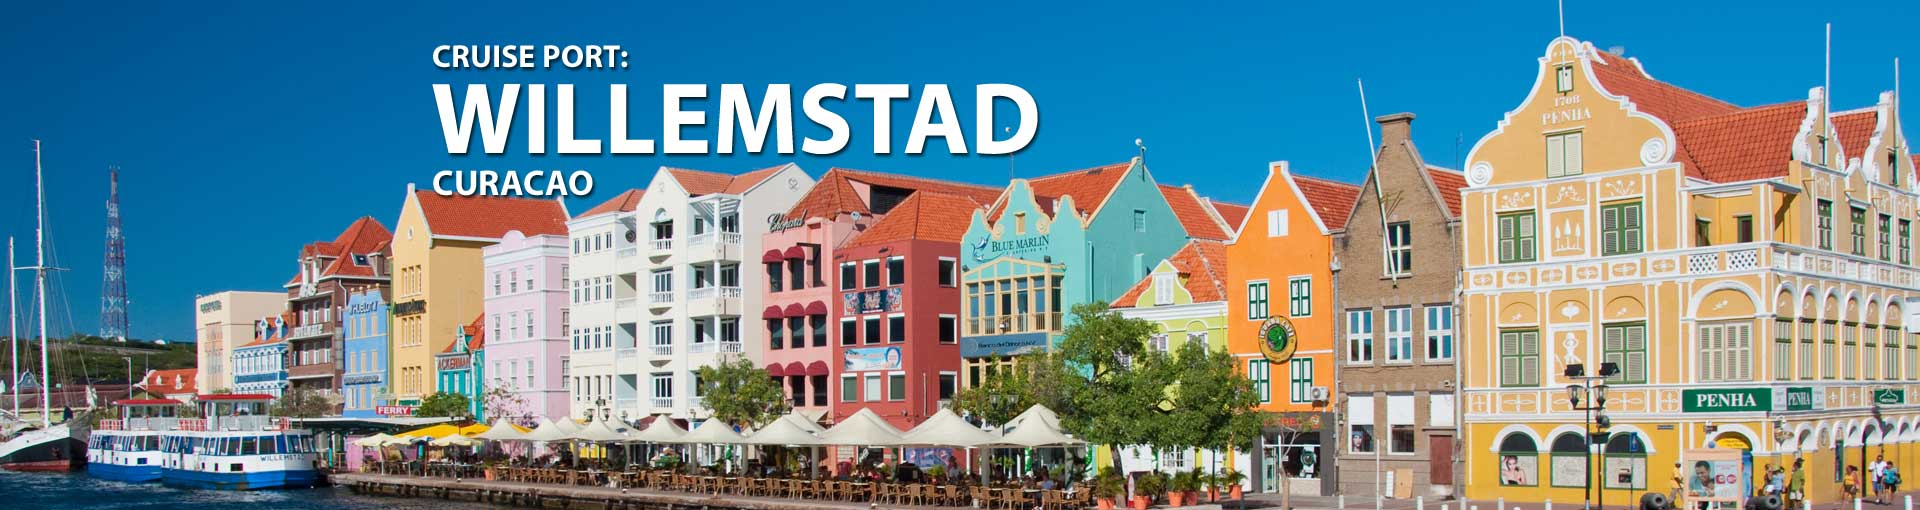 Cruises to Willemstad, Curacao